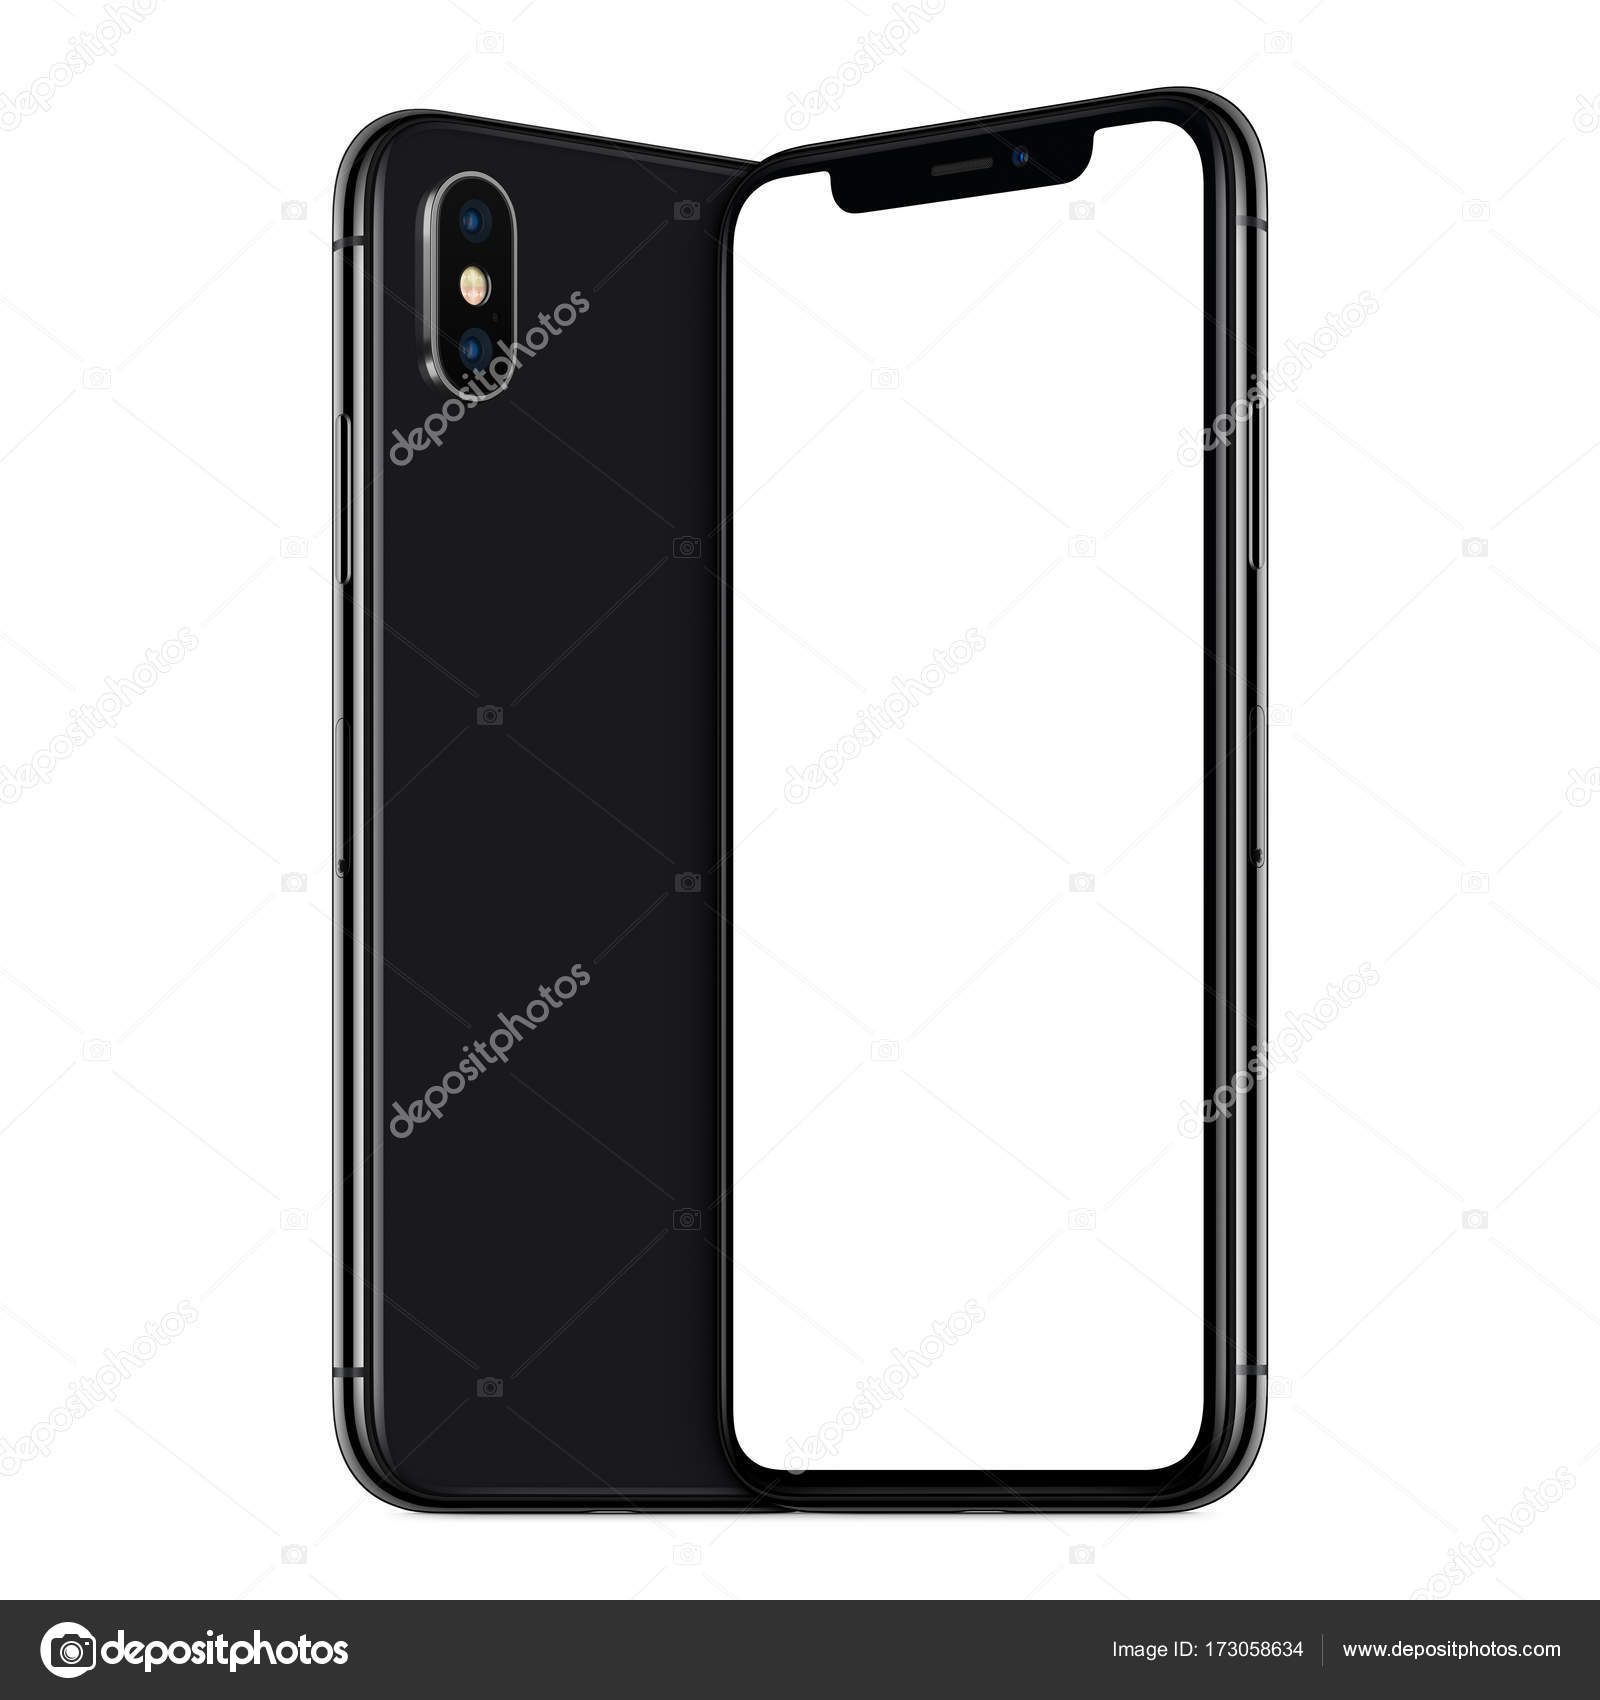 super popular f49c4 b3237 Black turned smartphones similar to iPhone X mockup front and back ...